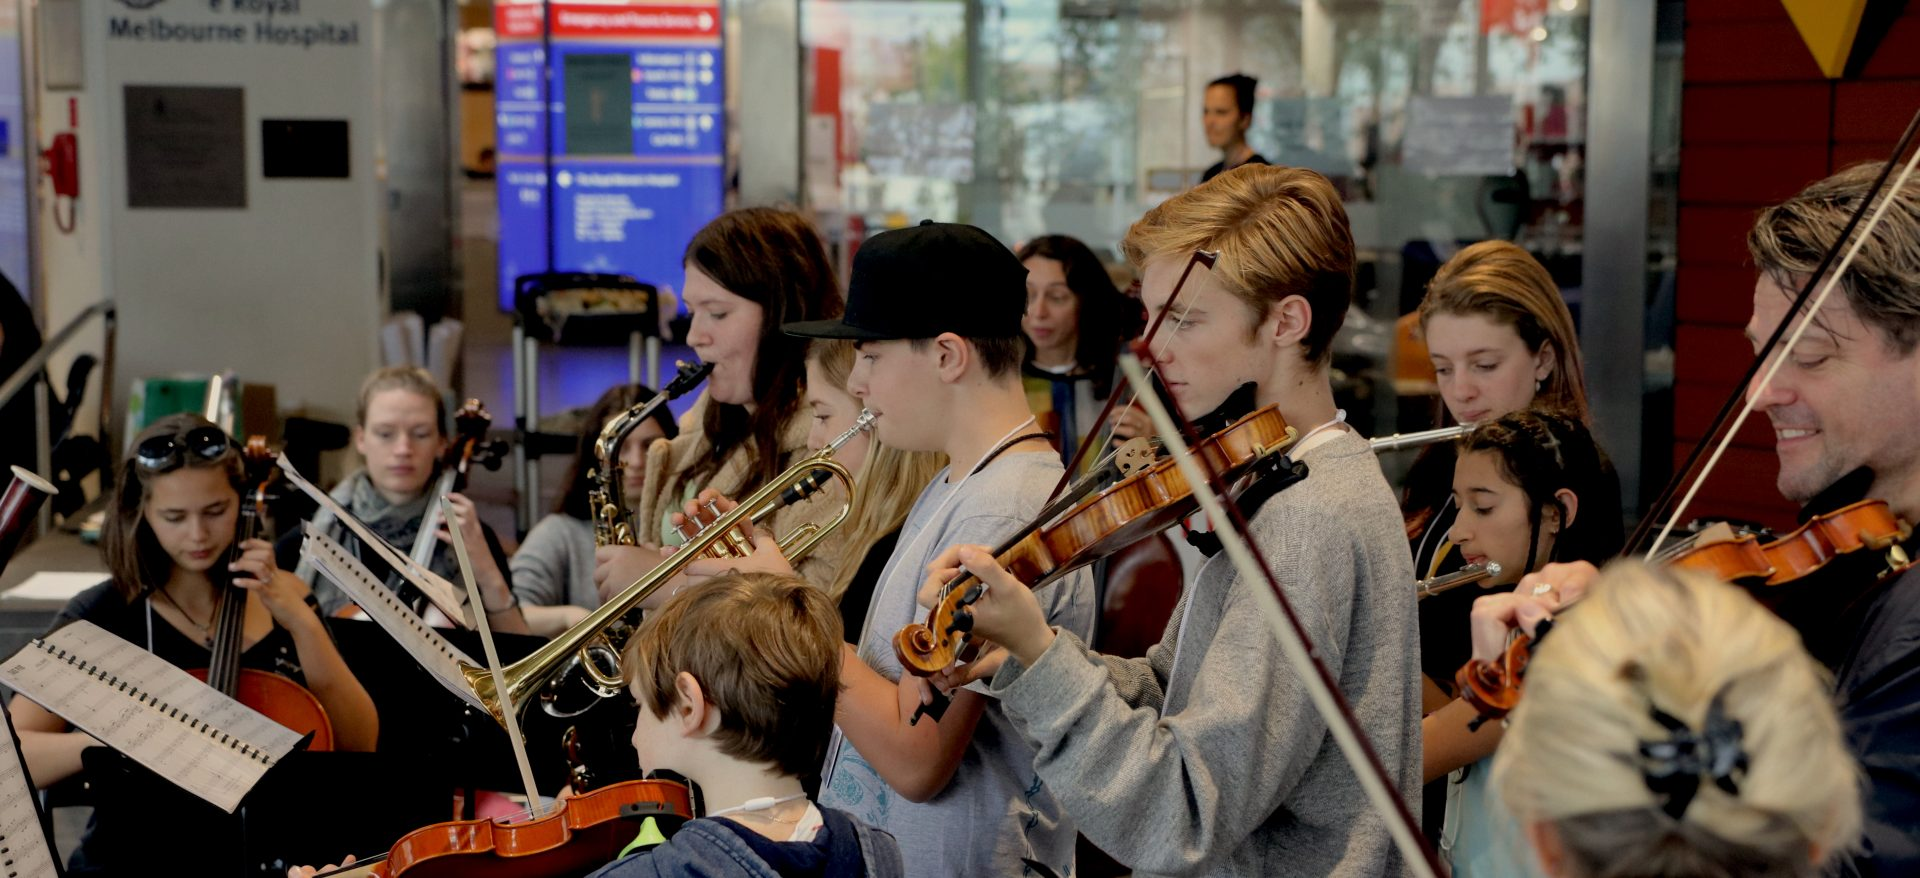 Music Students Perform at Royal Melbourne Hospital